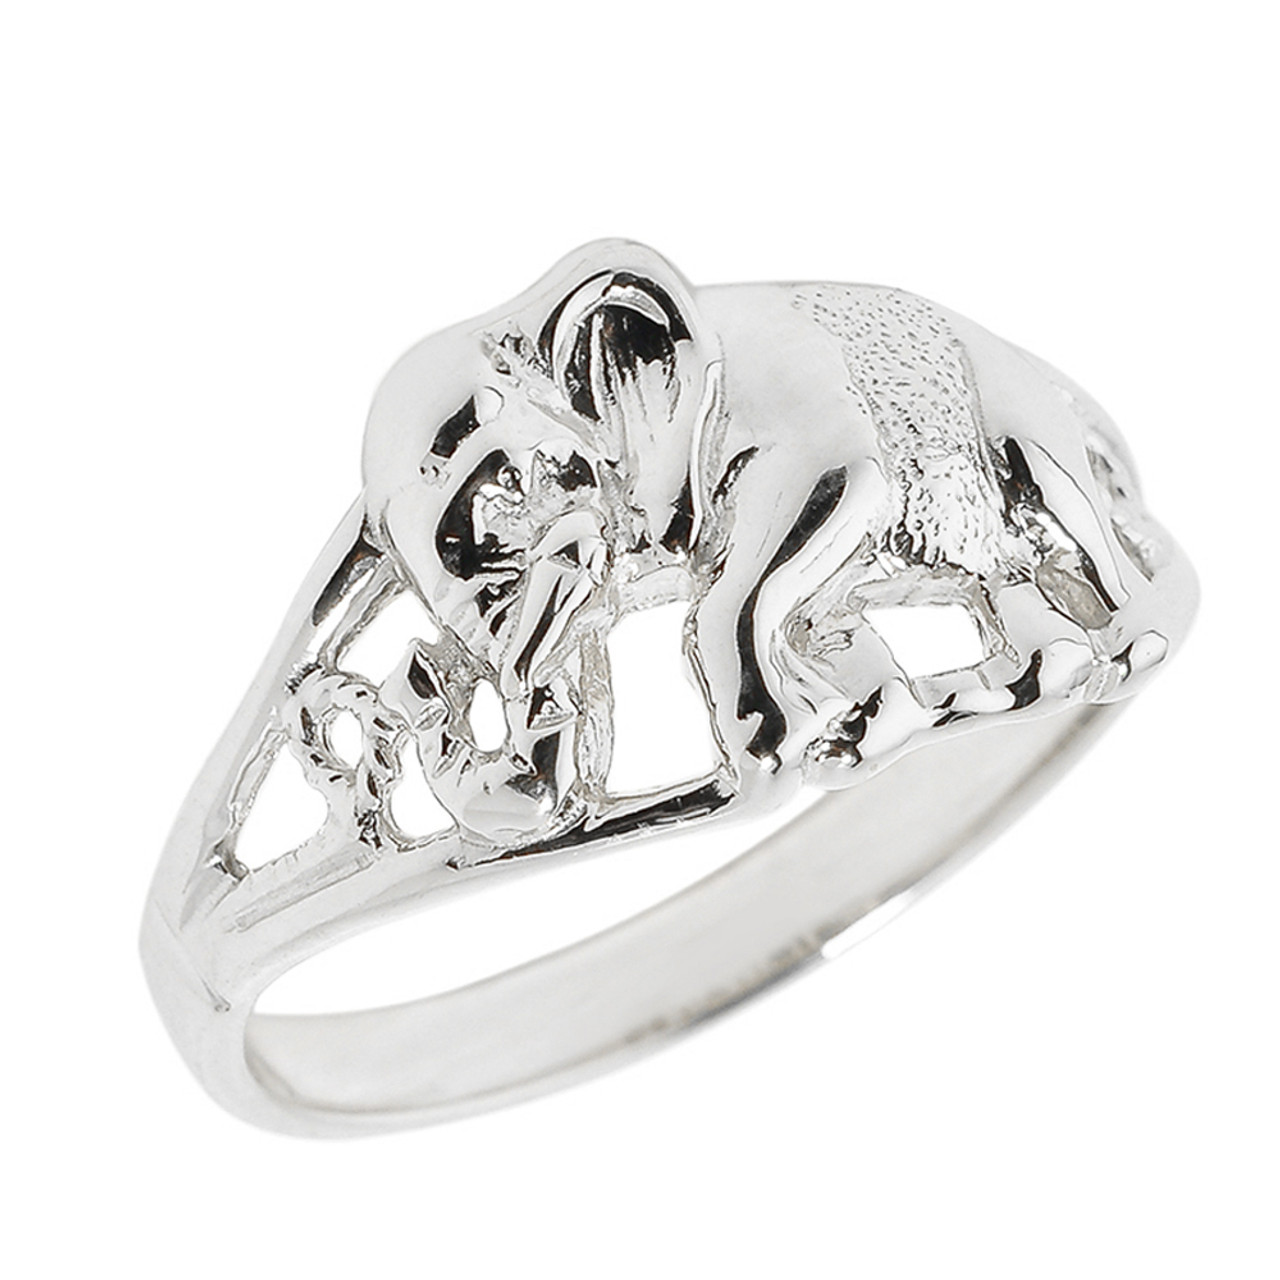 engagement suetables christy products ring family christyelephantring elephant rings